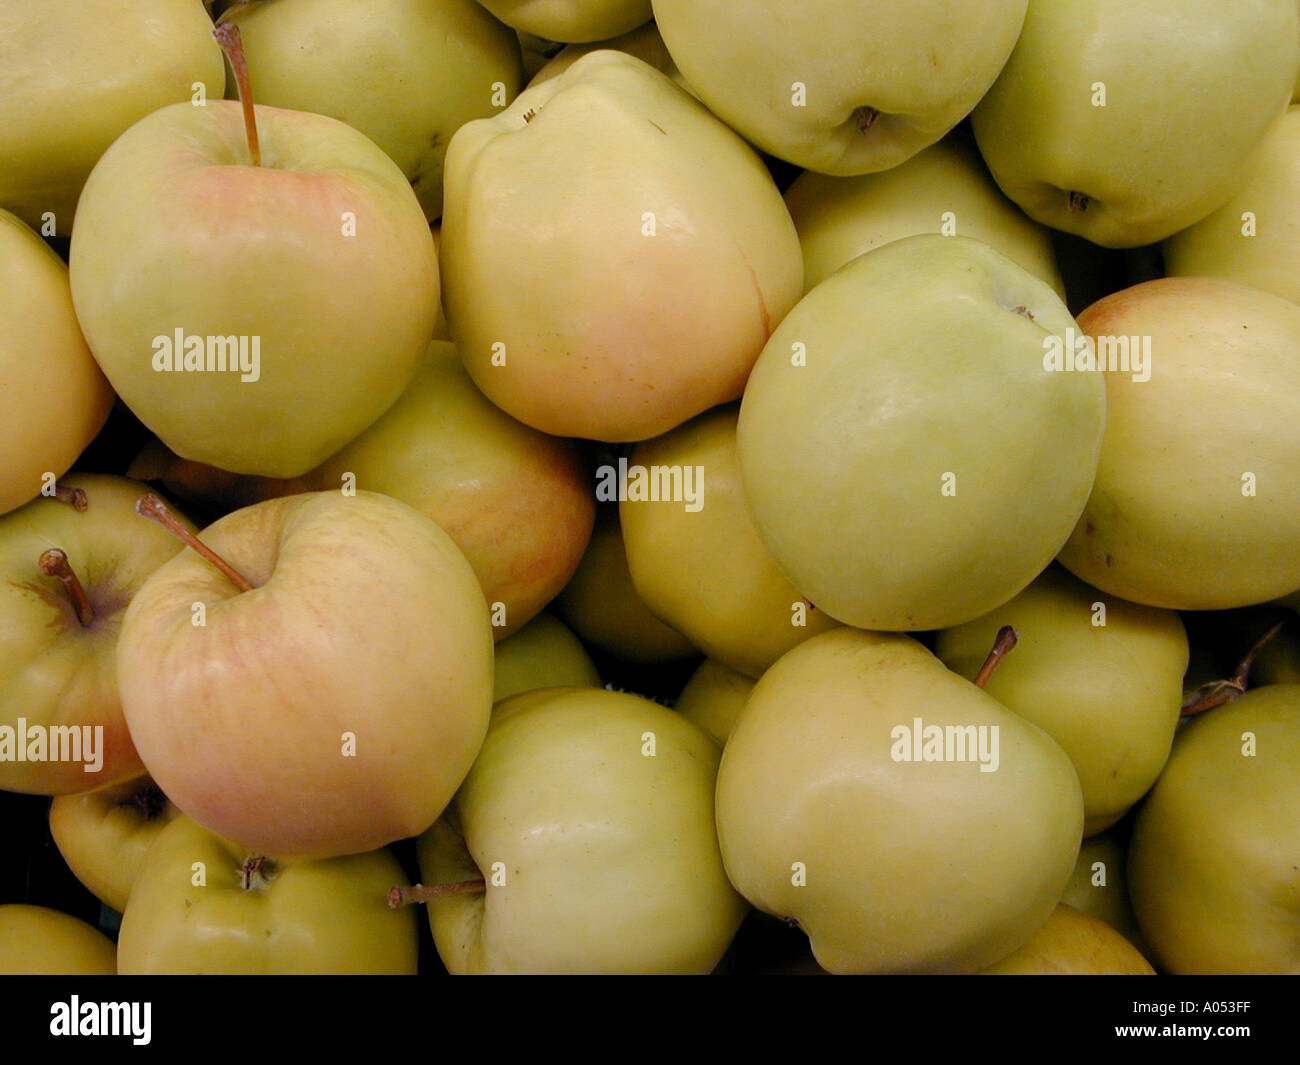 Golden Deliciou at a fruit stand in eastern Washington State USA Stock Photo